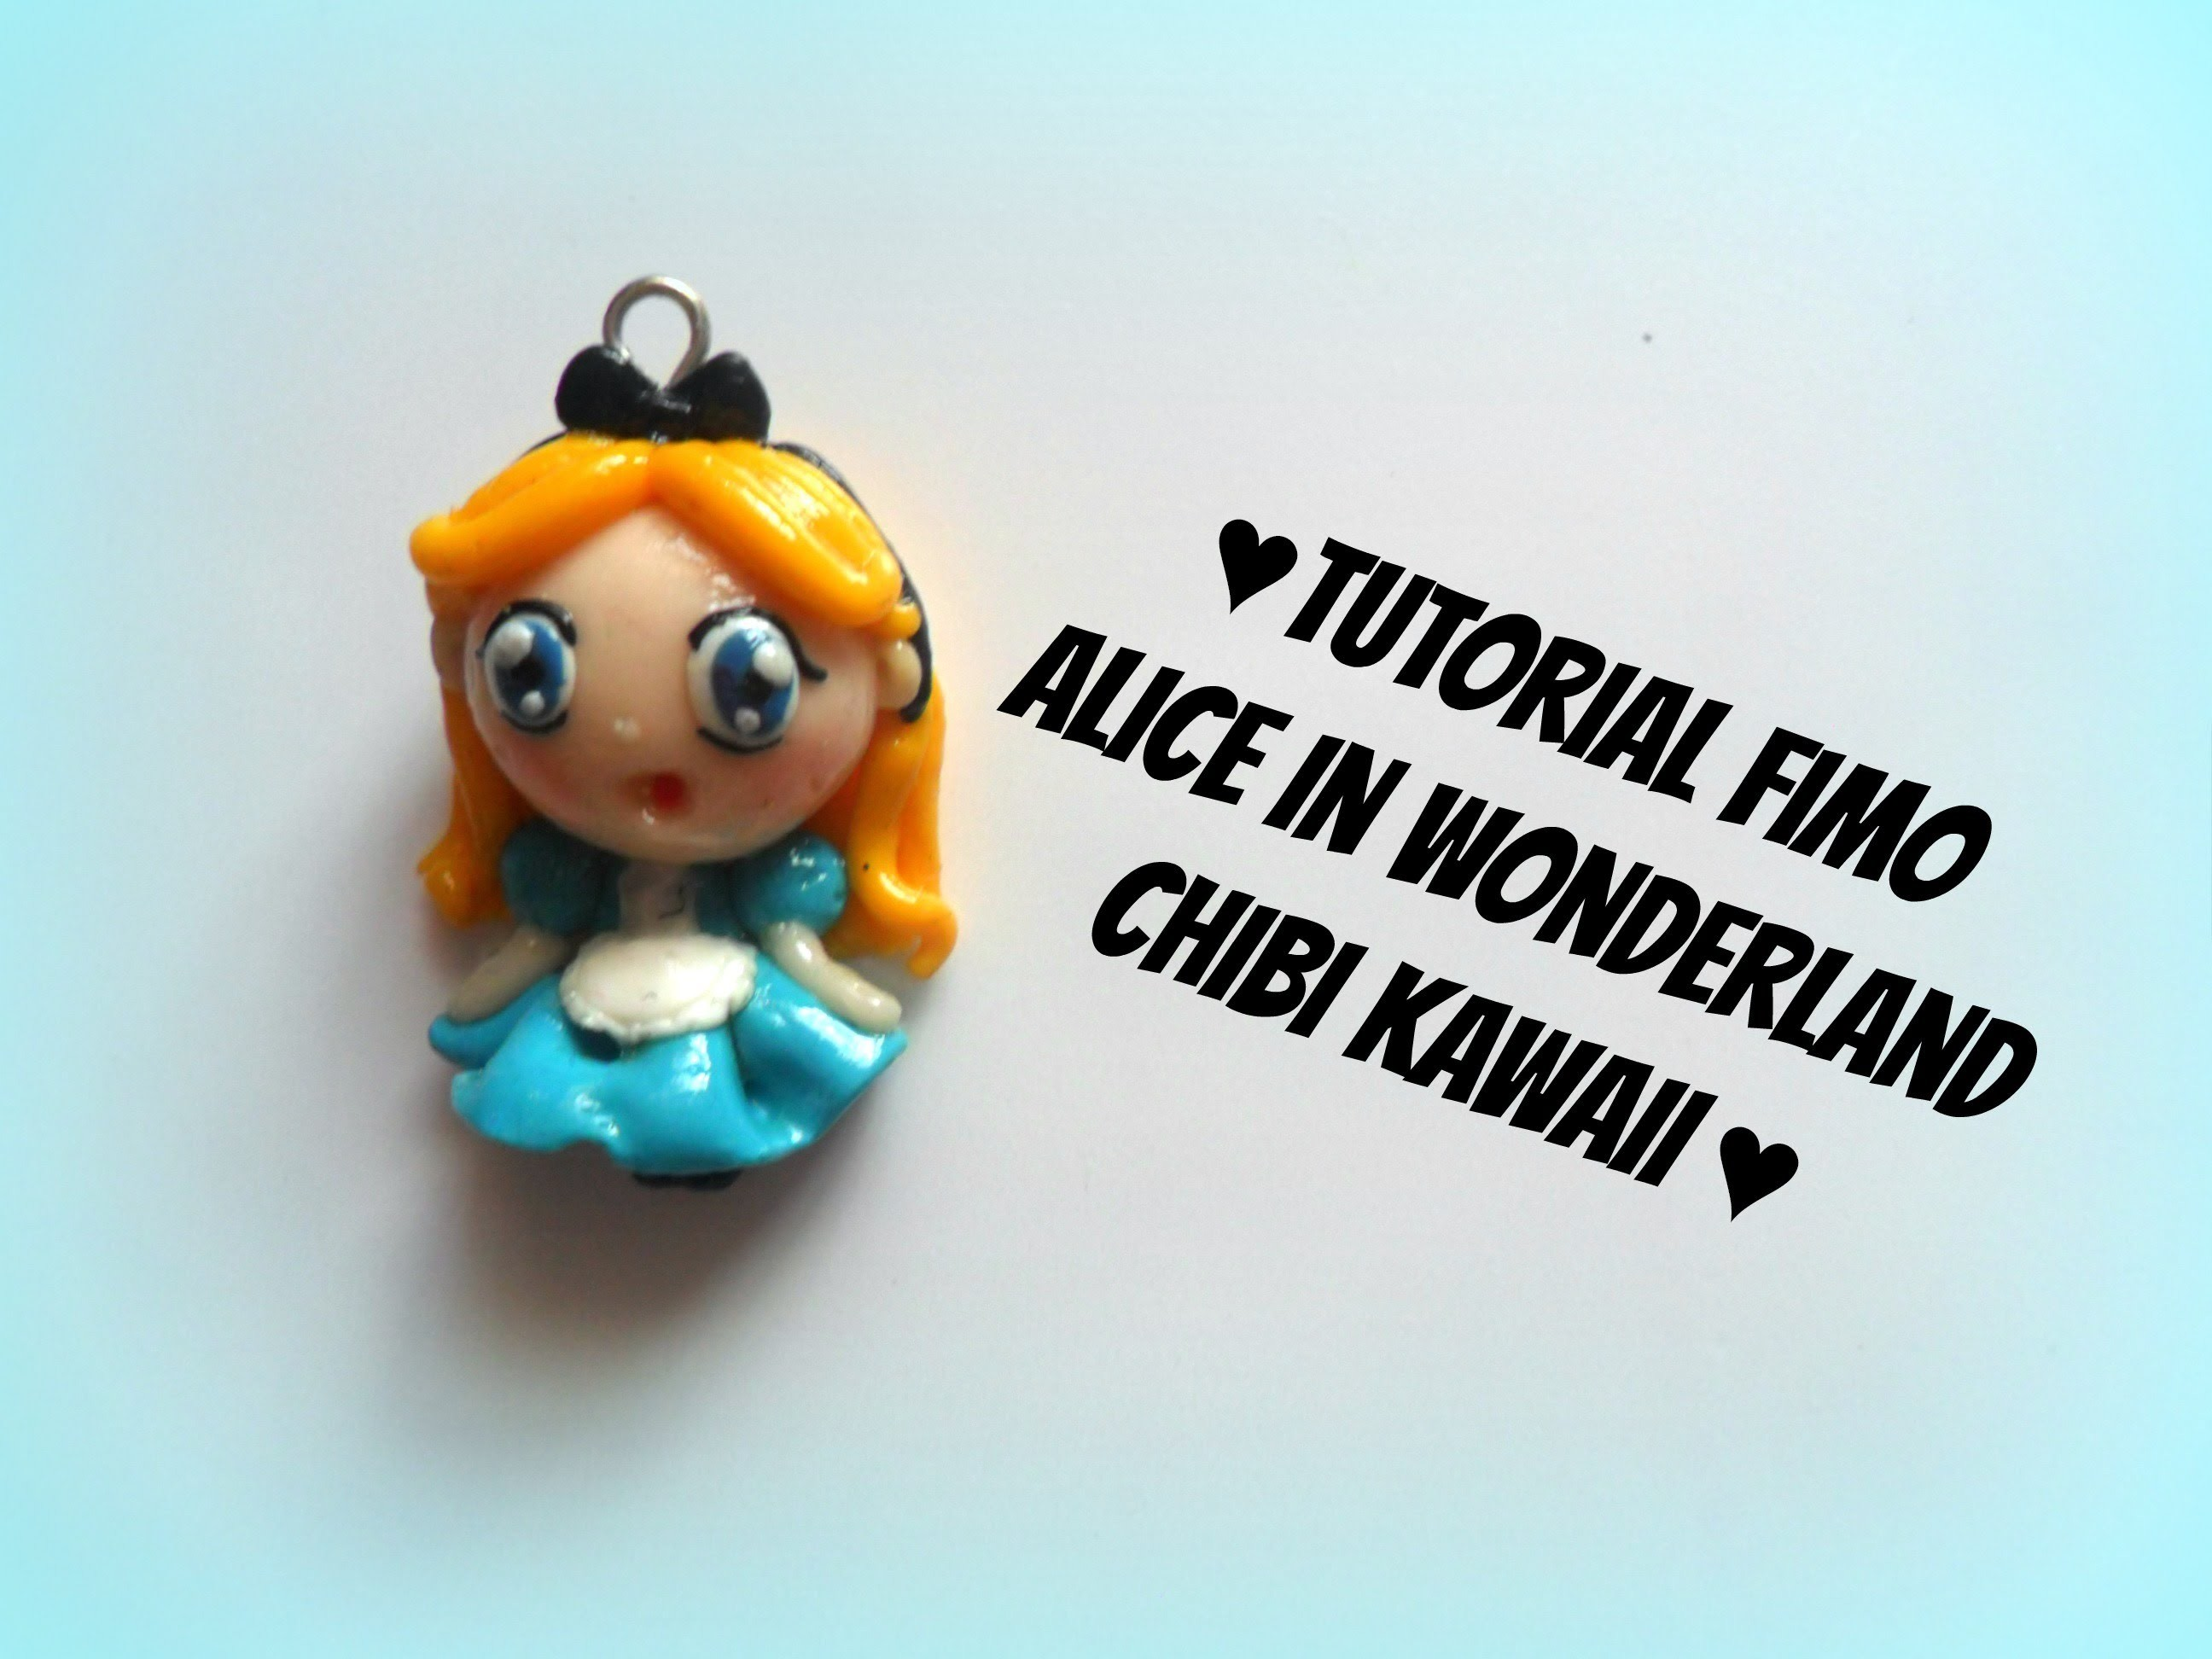 Alice in wonderland chibi kawaii fimo tutorial